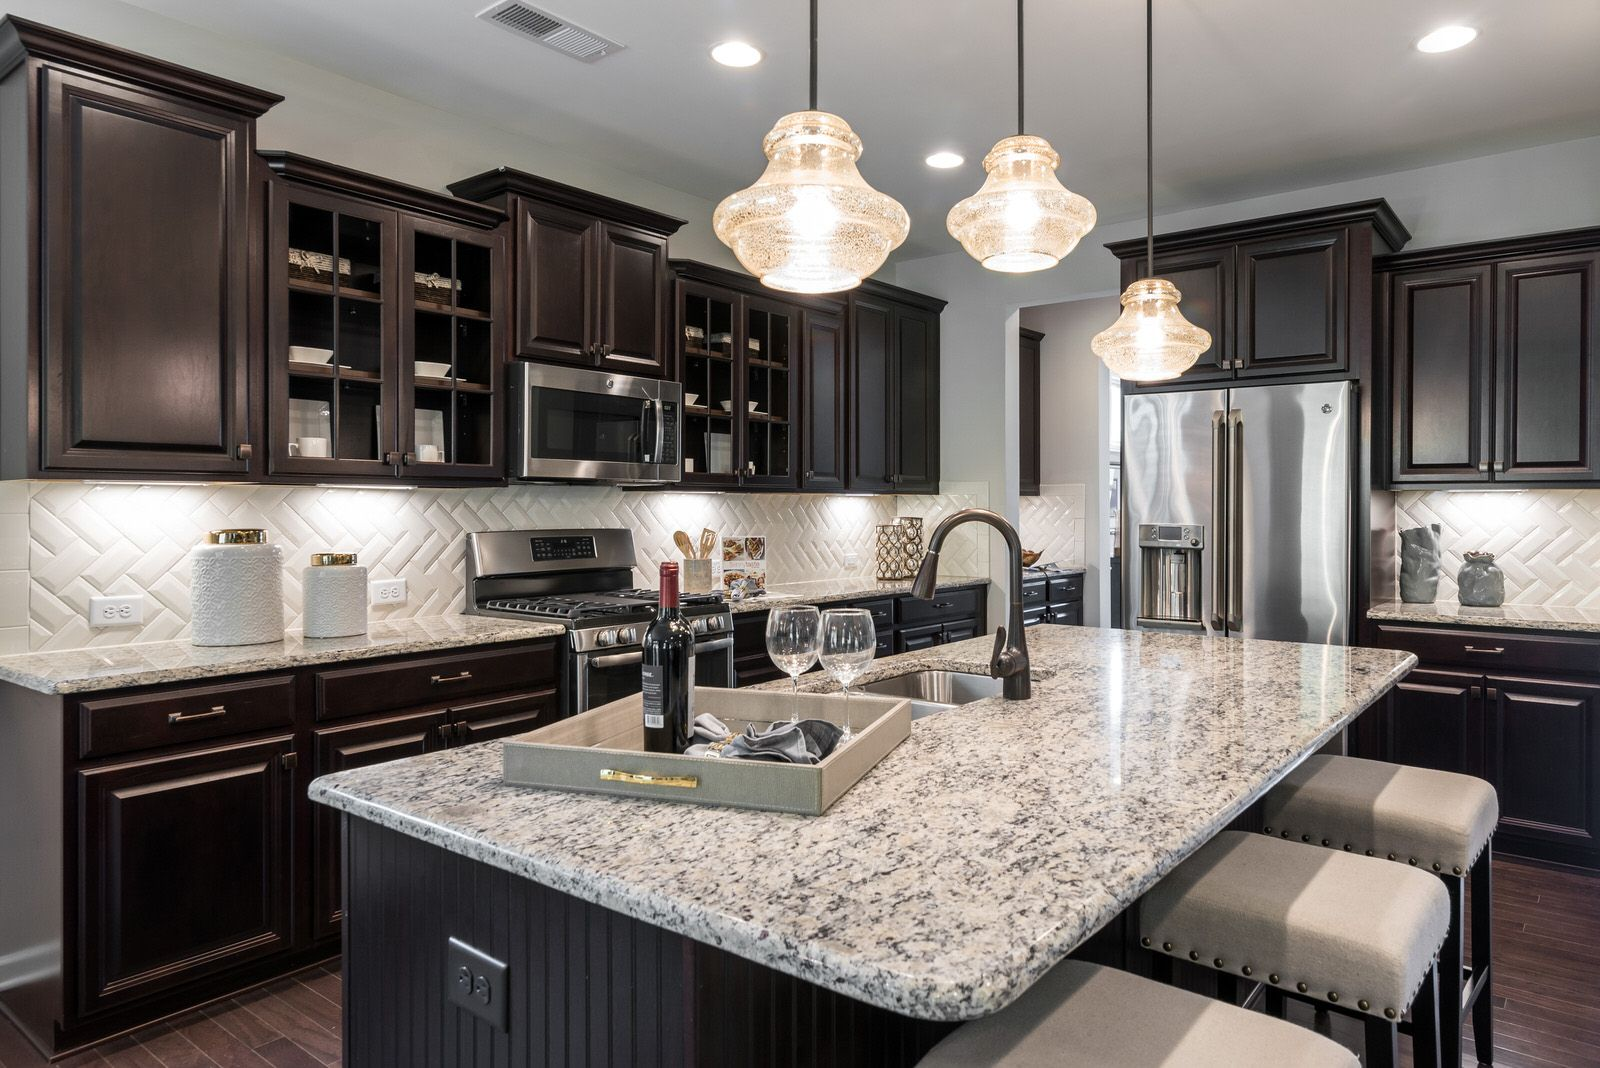 Kitchen featured in the Waverly By Taylor Morrison in Charlotte, SC